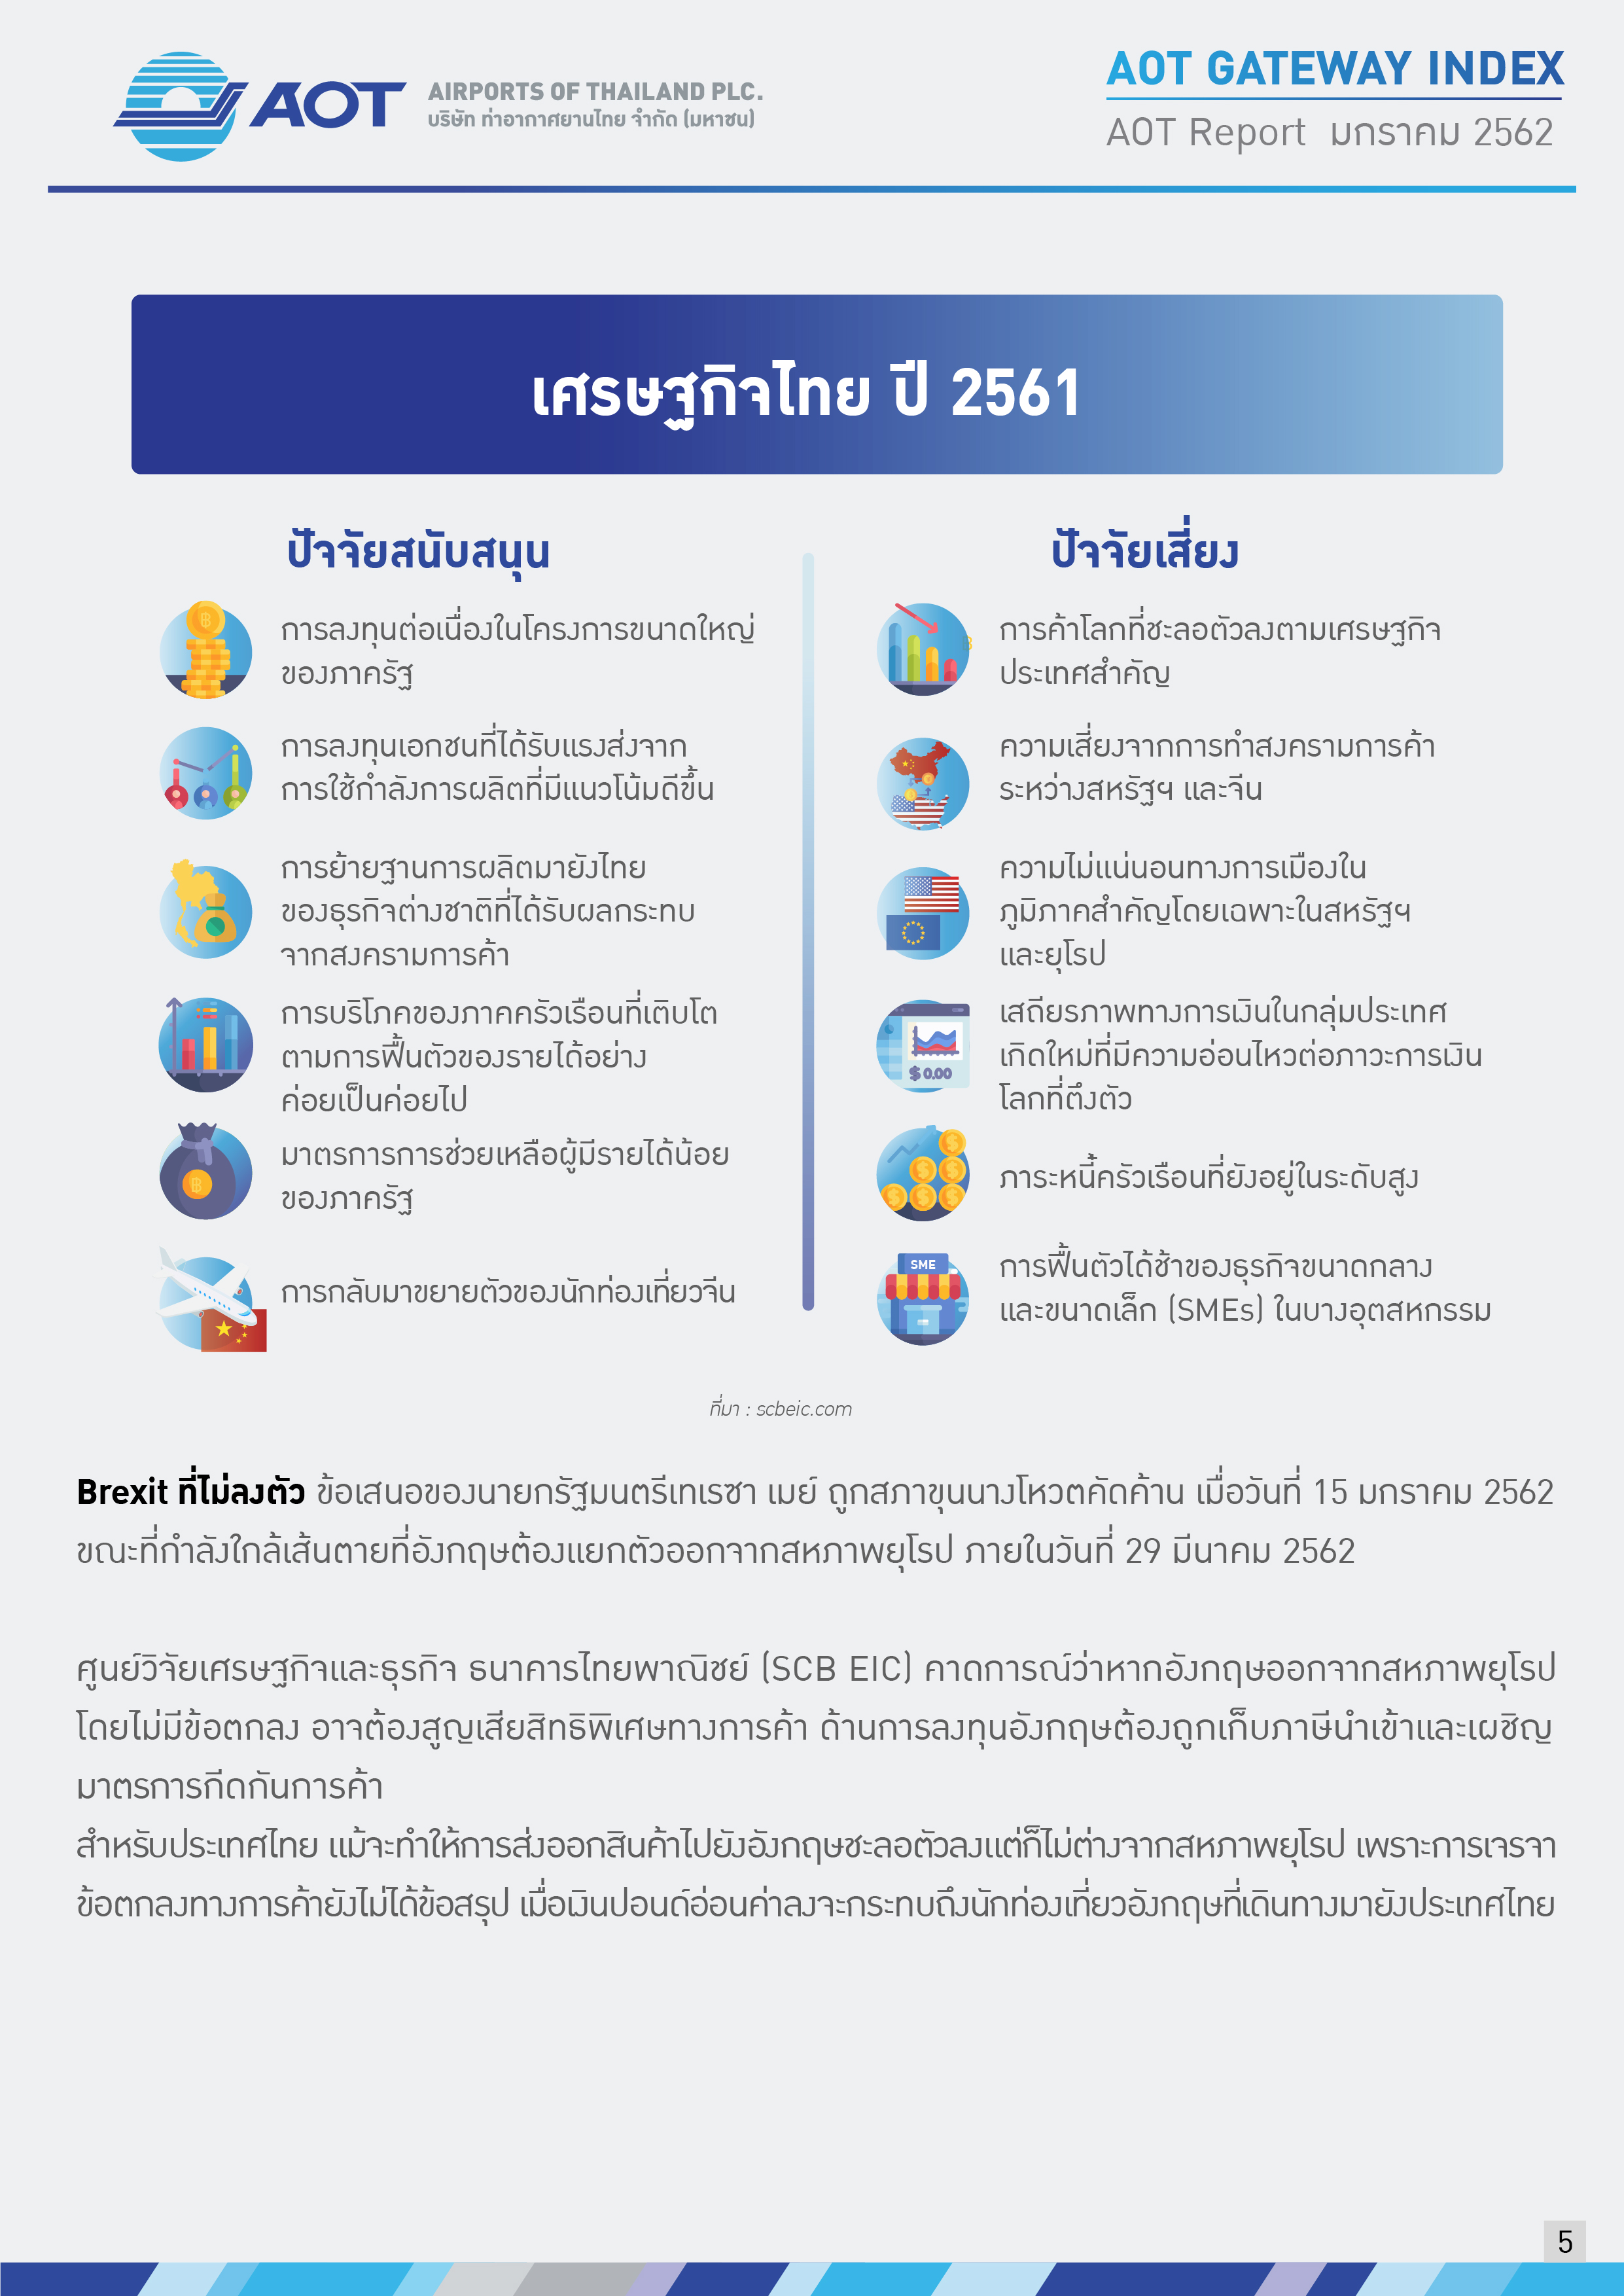 AOTcontent2019_Index_02_เศรษฐกิจโลก_V5_20190401_Page05